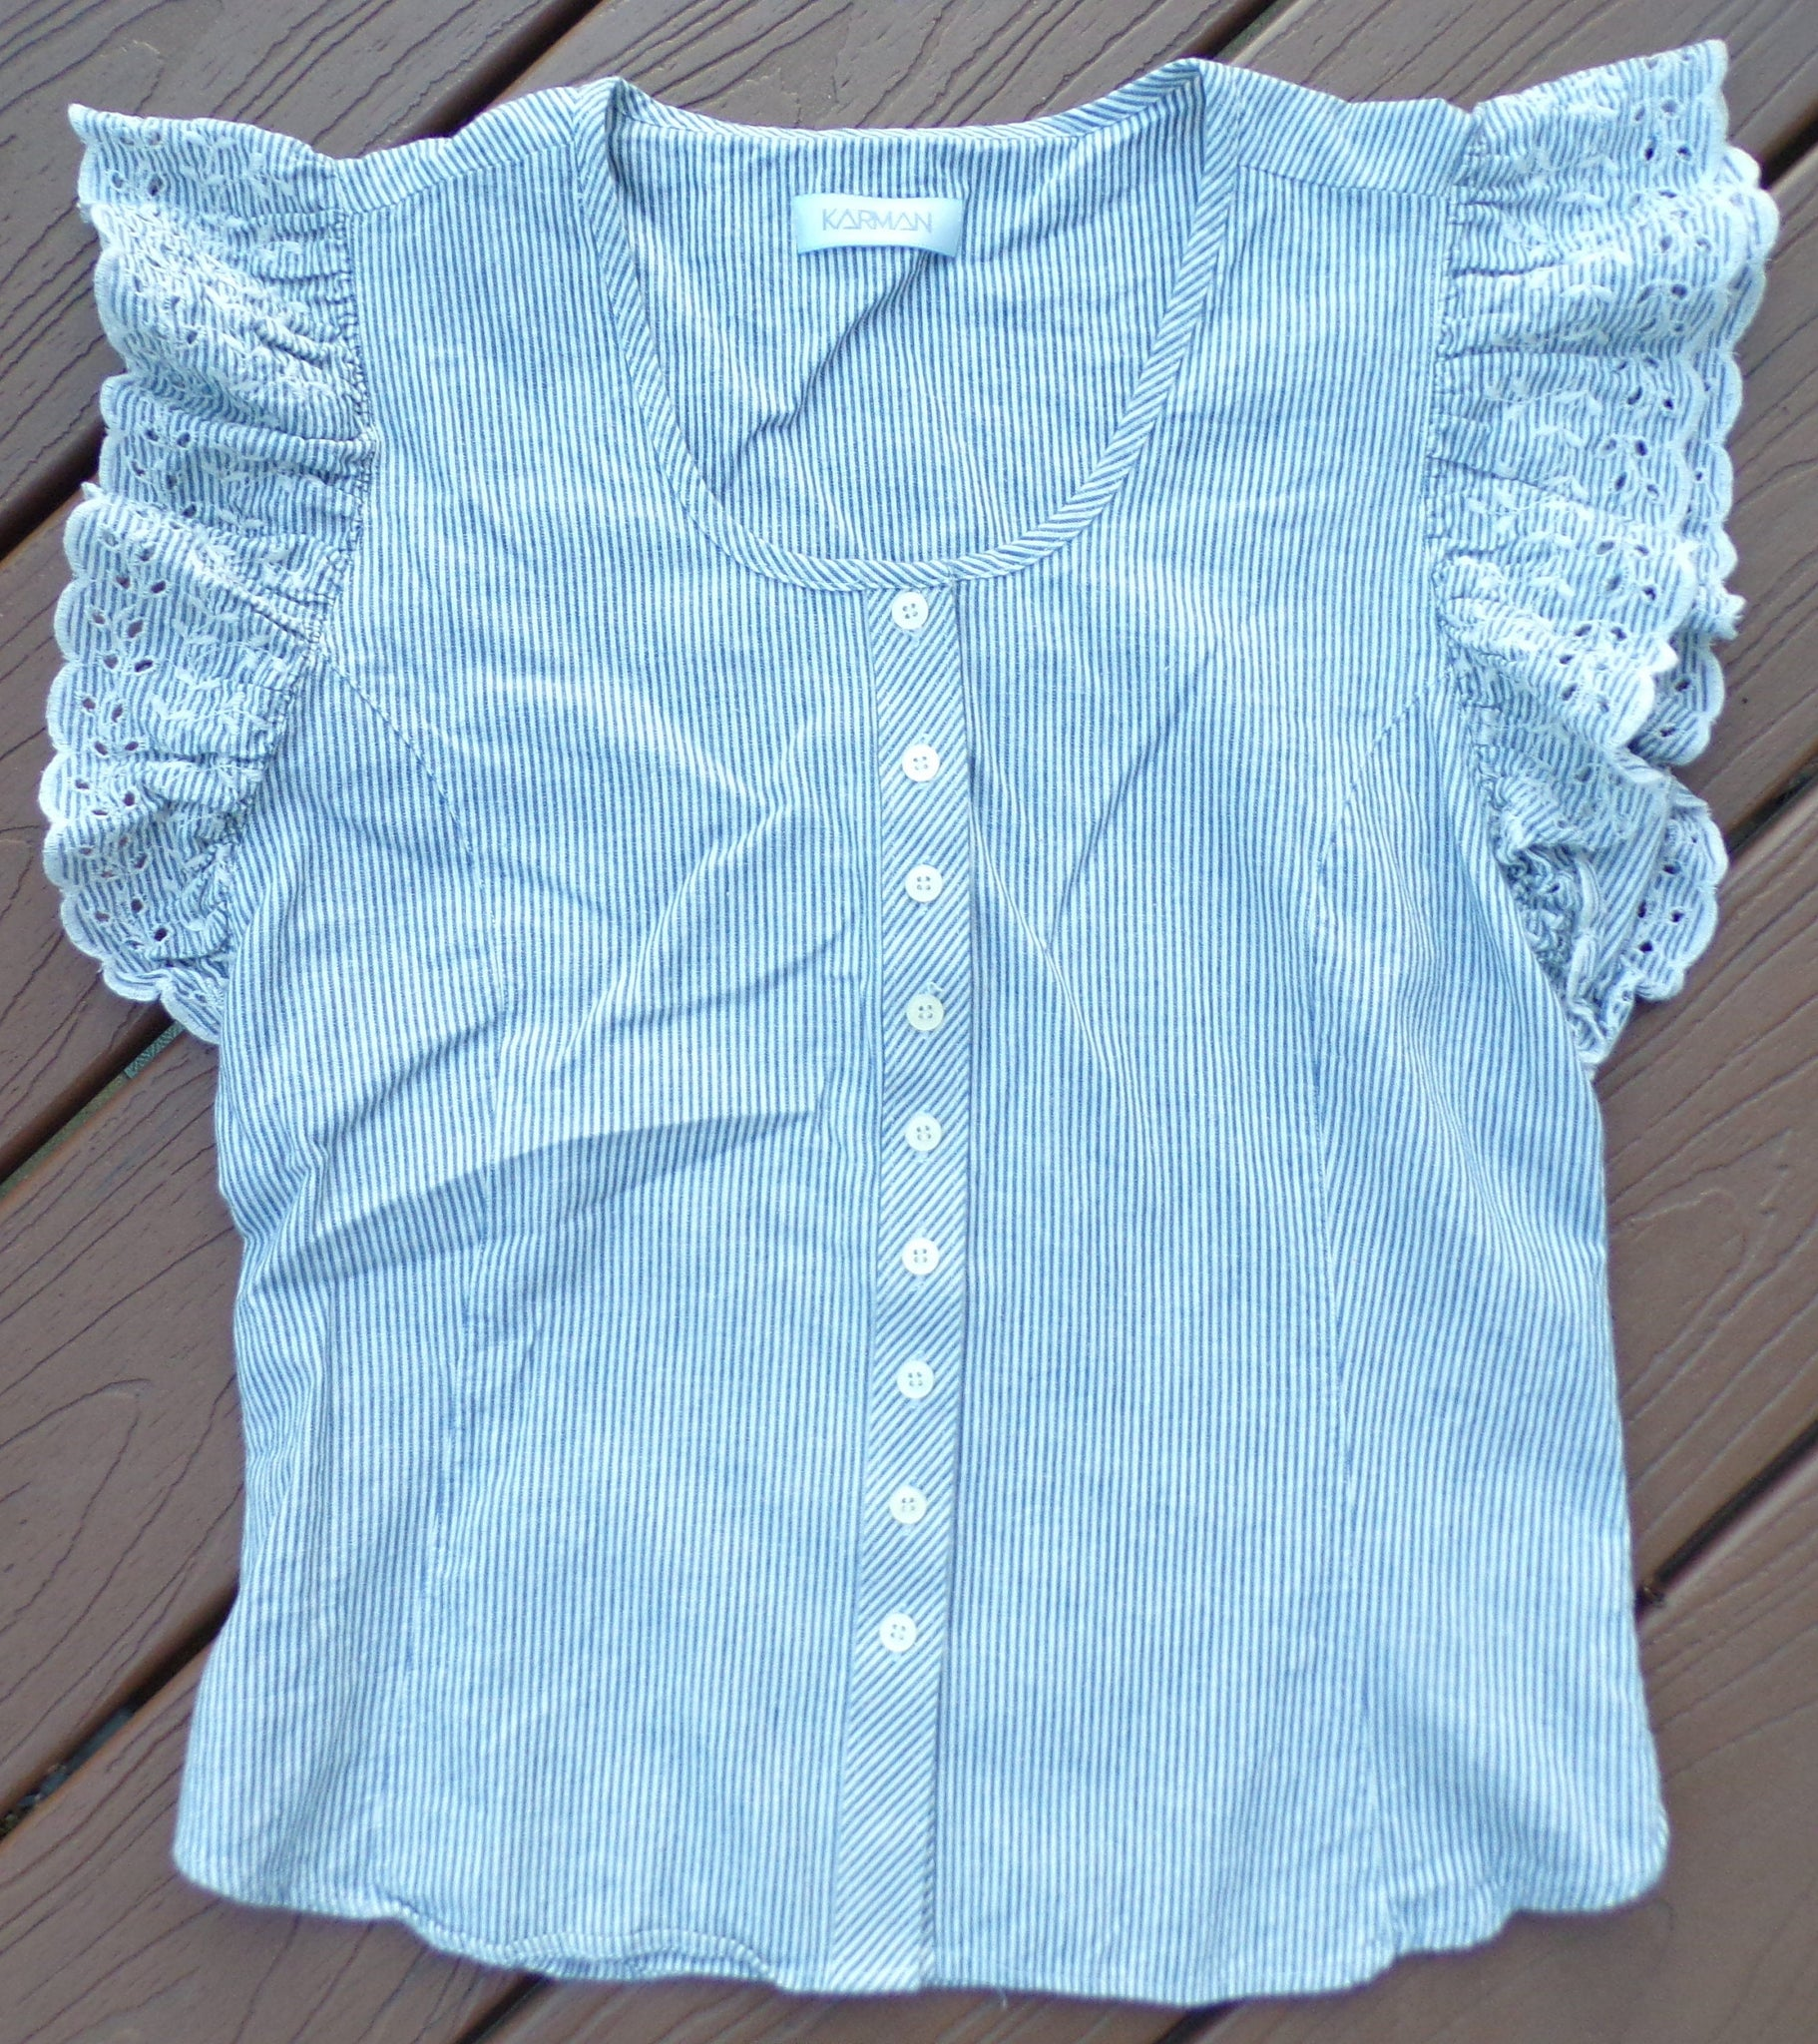 karman CHAMBRAY STRIPED COTTON eyelet sleeve vintage blouse S (G5)